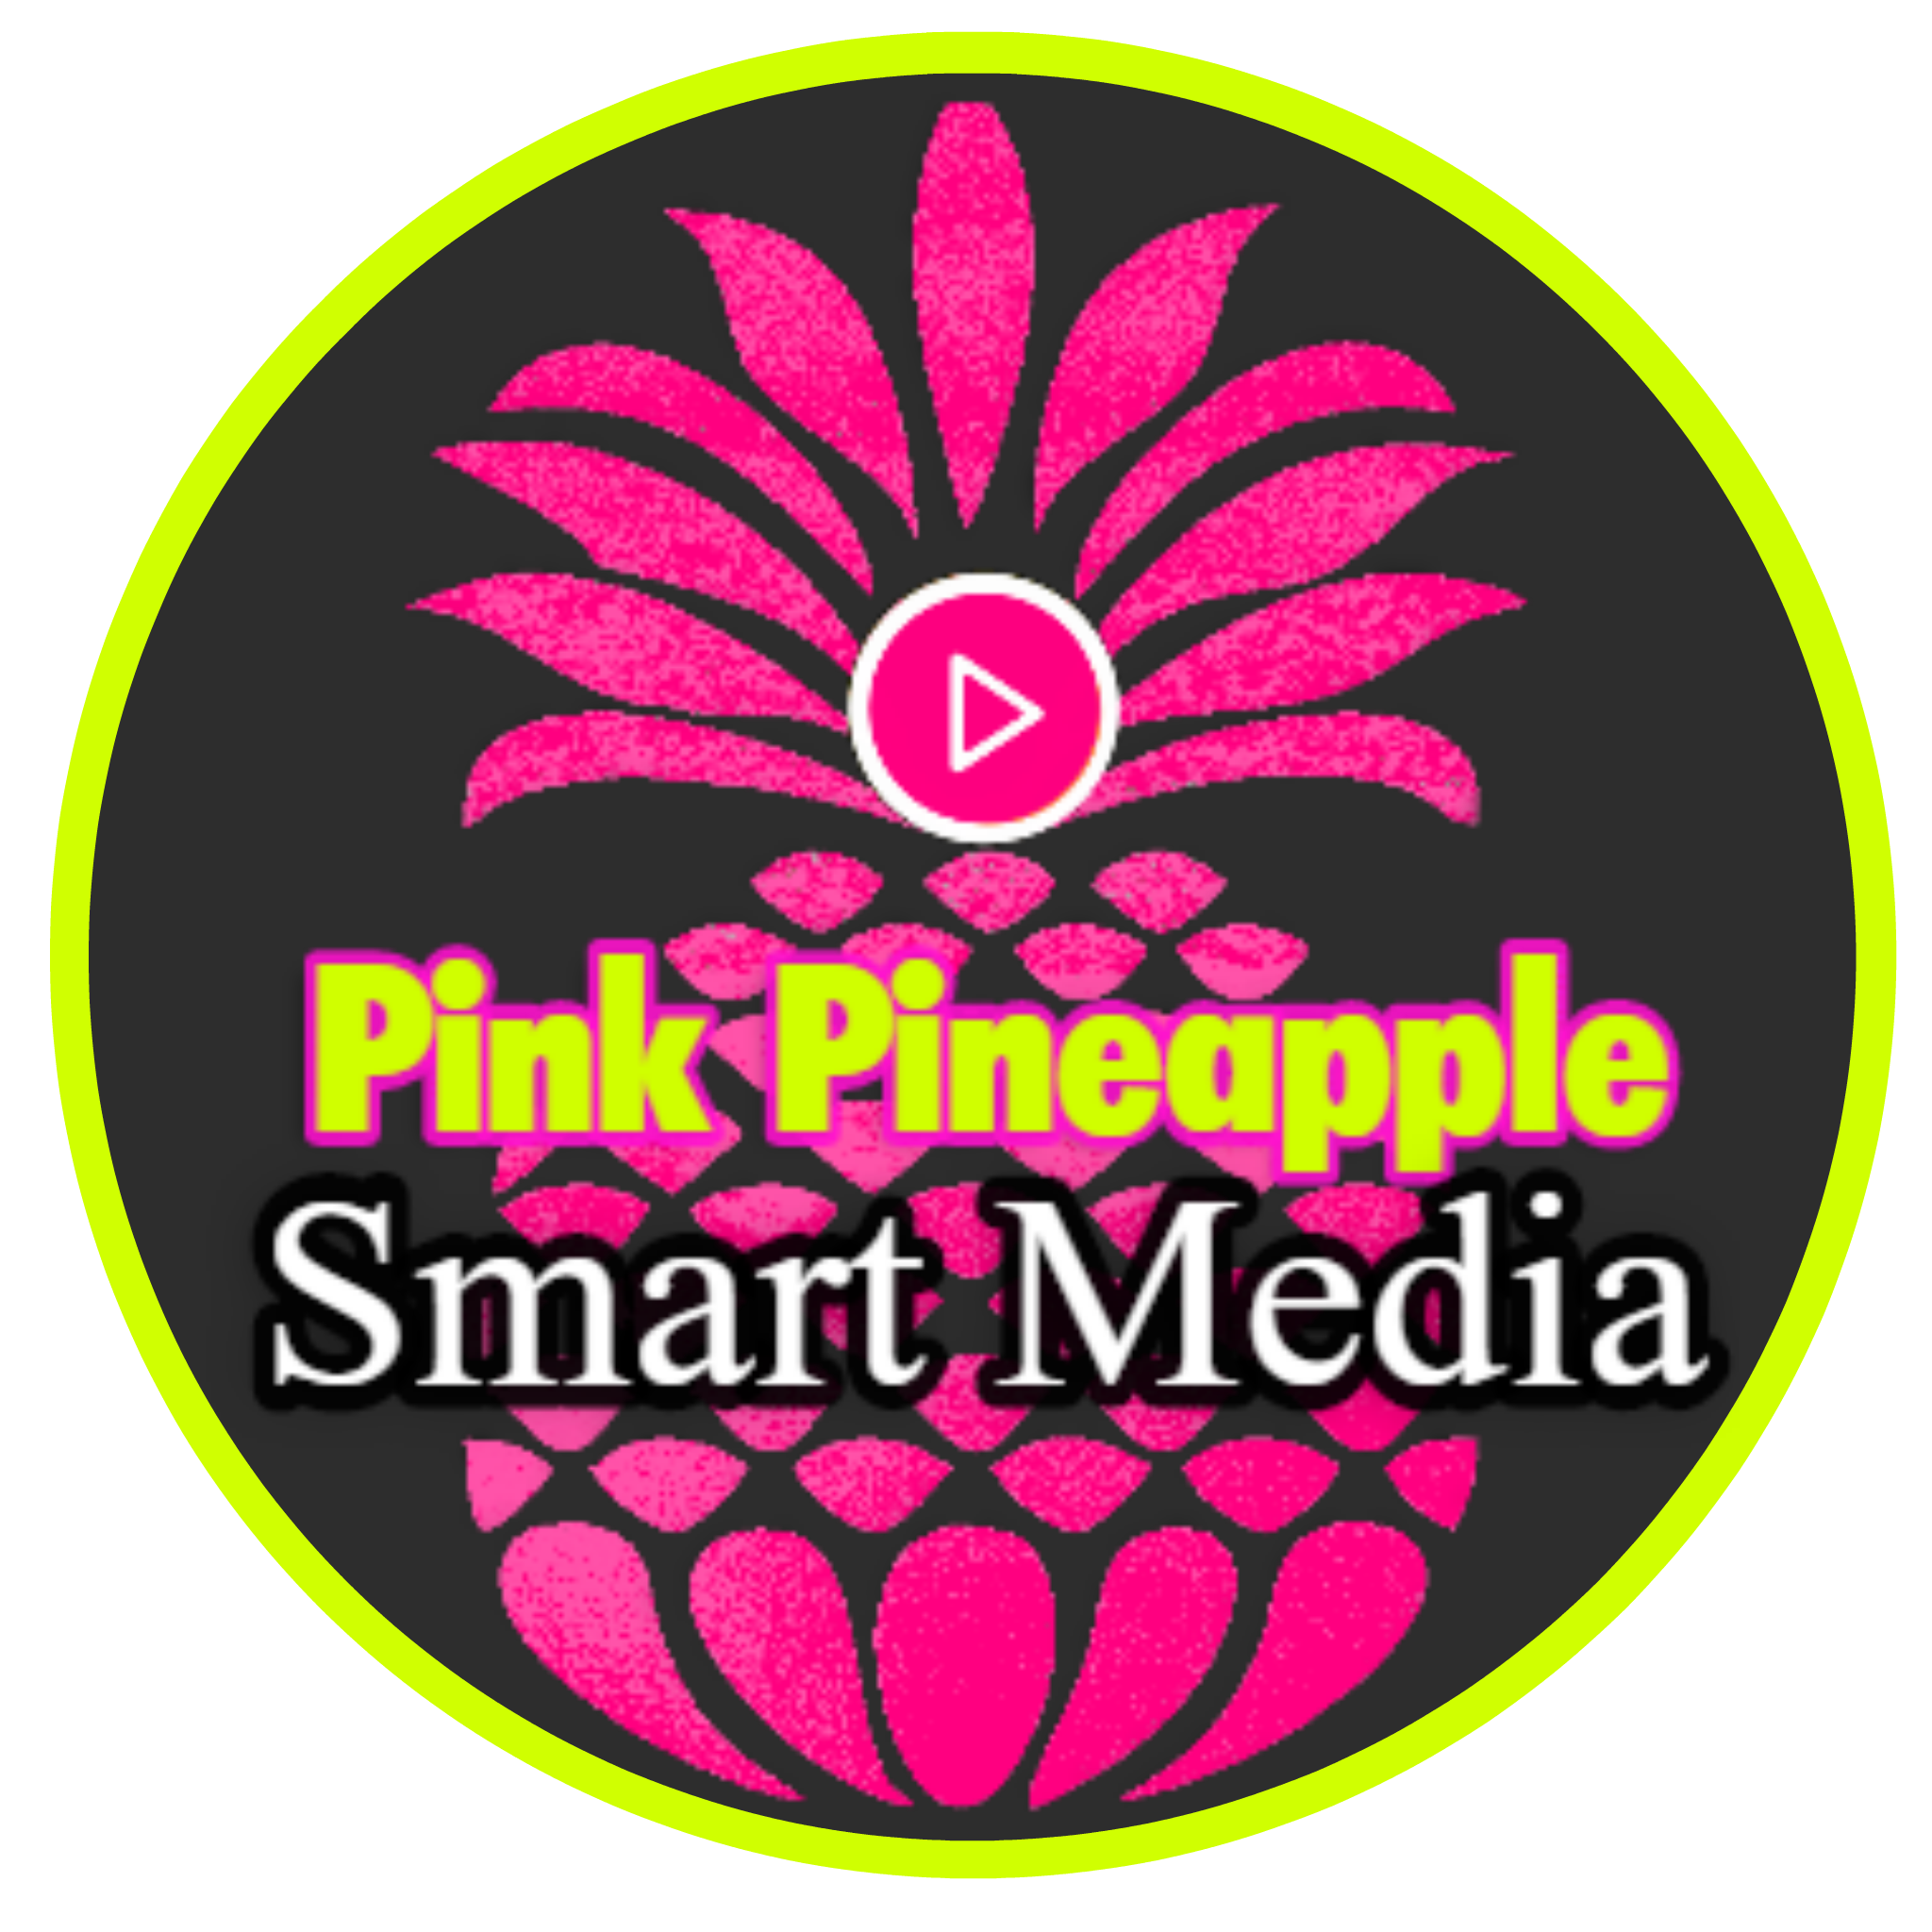 Pink Pineapple Online